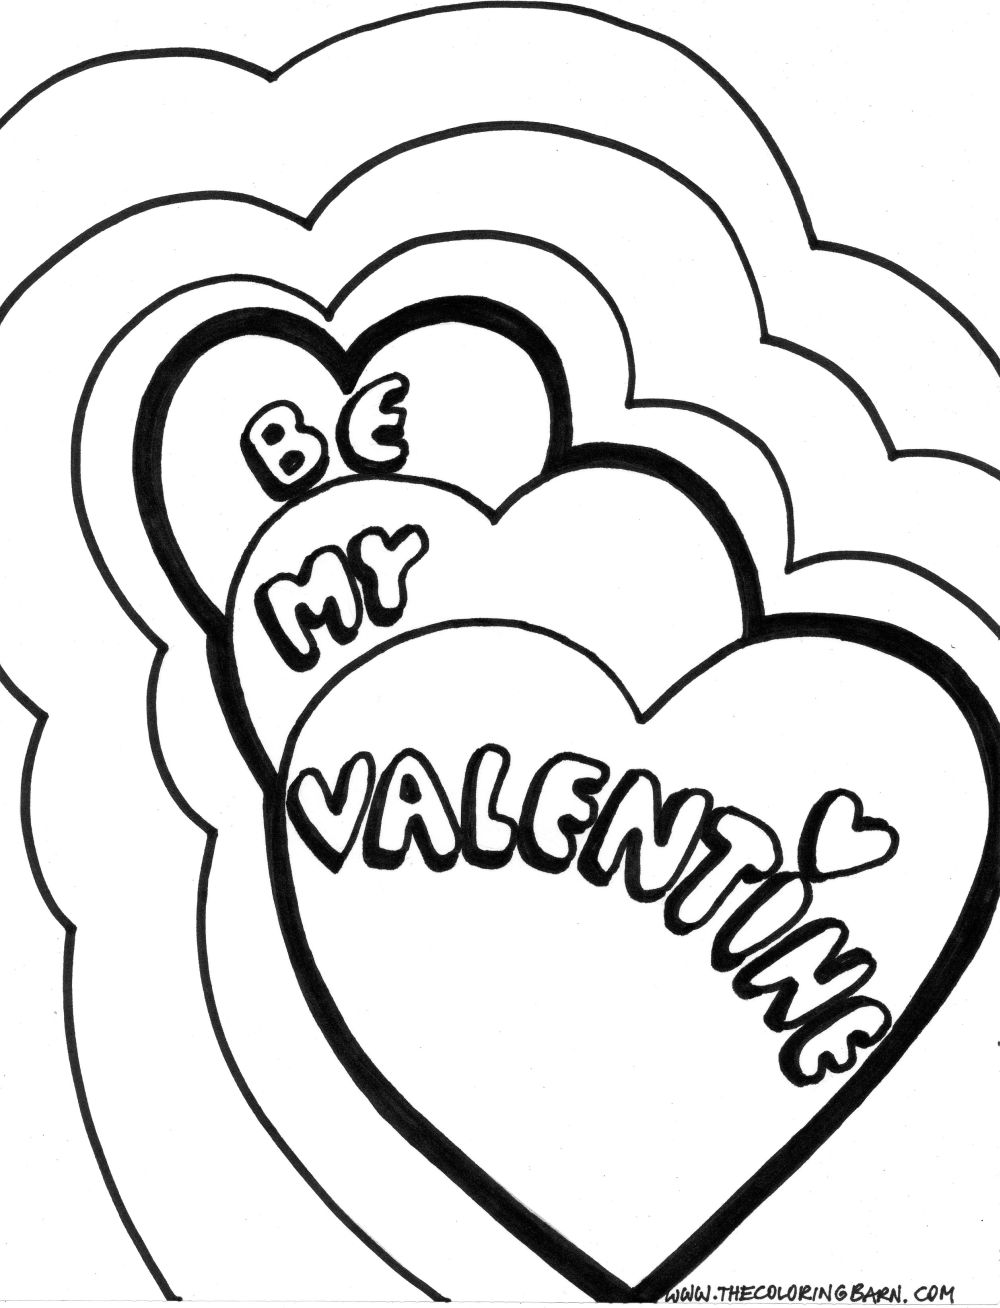 printable valentine coloring pages - Valentine's Day Coloring Pages